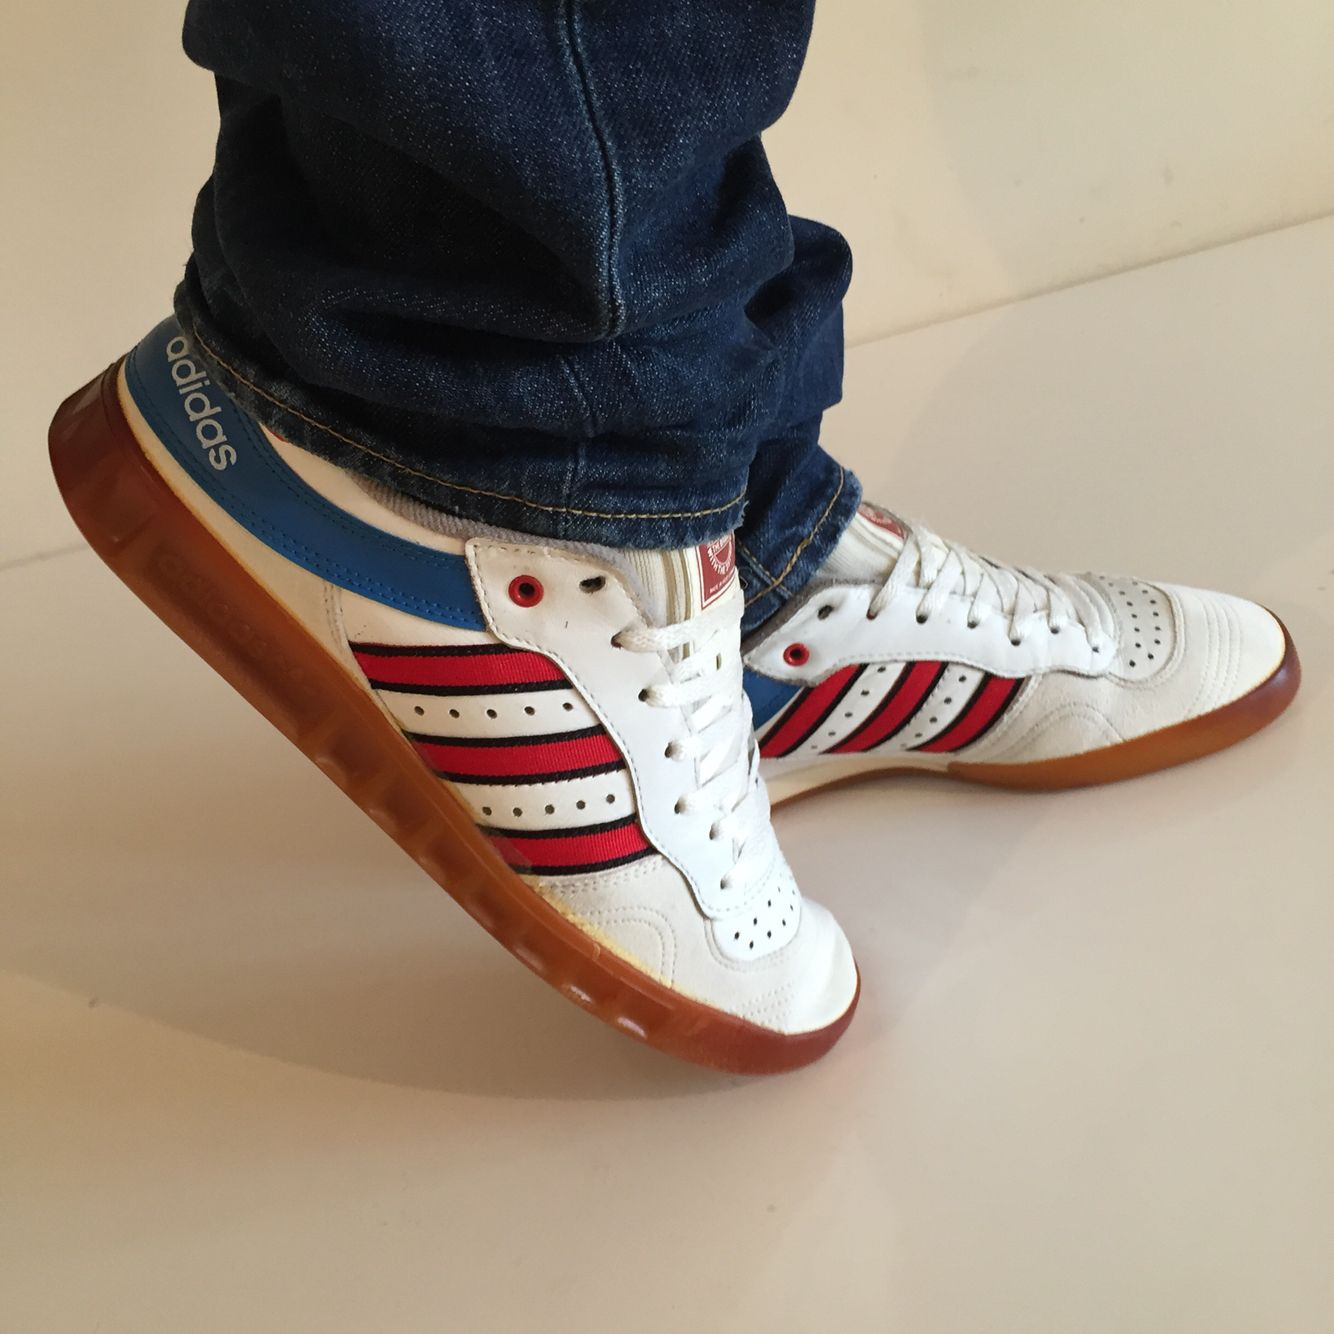 In Germany Adidas Top Made West Handball 1987Diverse MpLSVGqUz